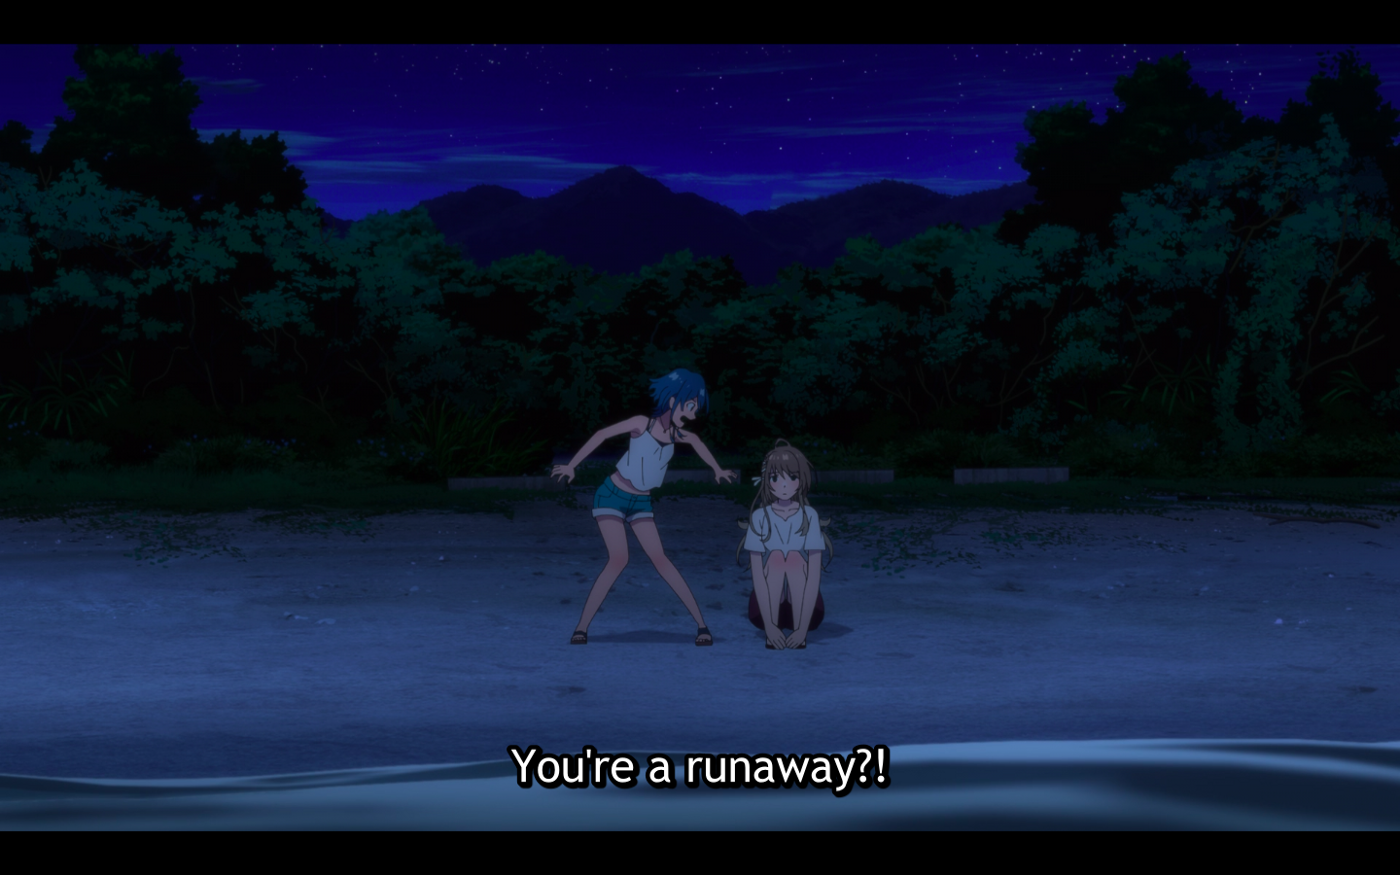 Kukuru is exaggeratedly shocked that Fuuka is a runaway as they talk on the beach.